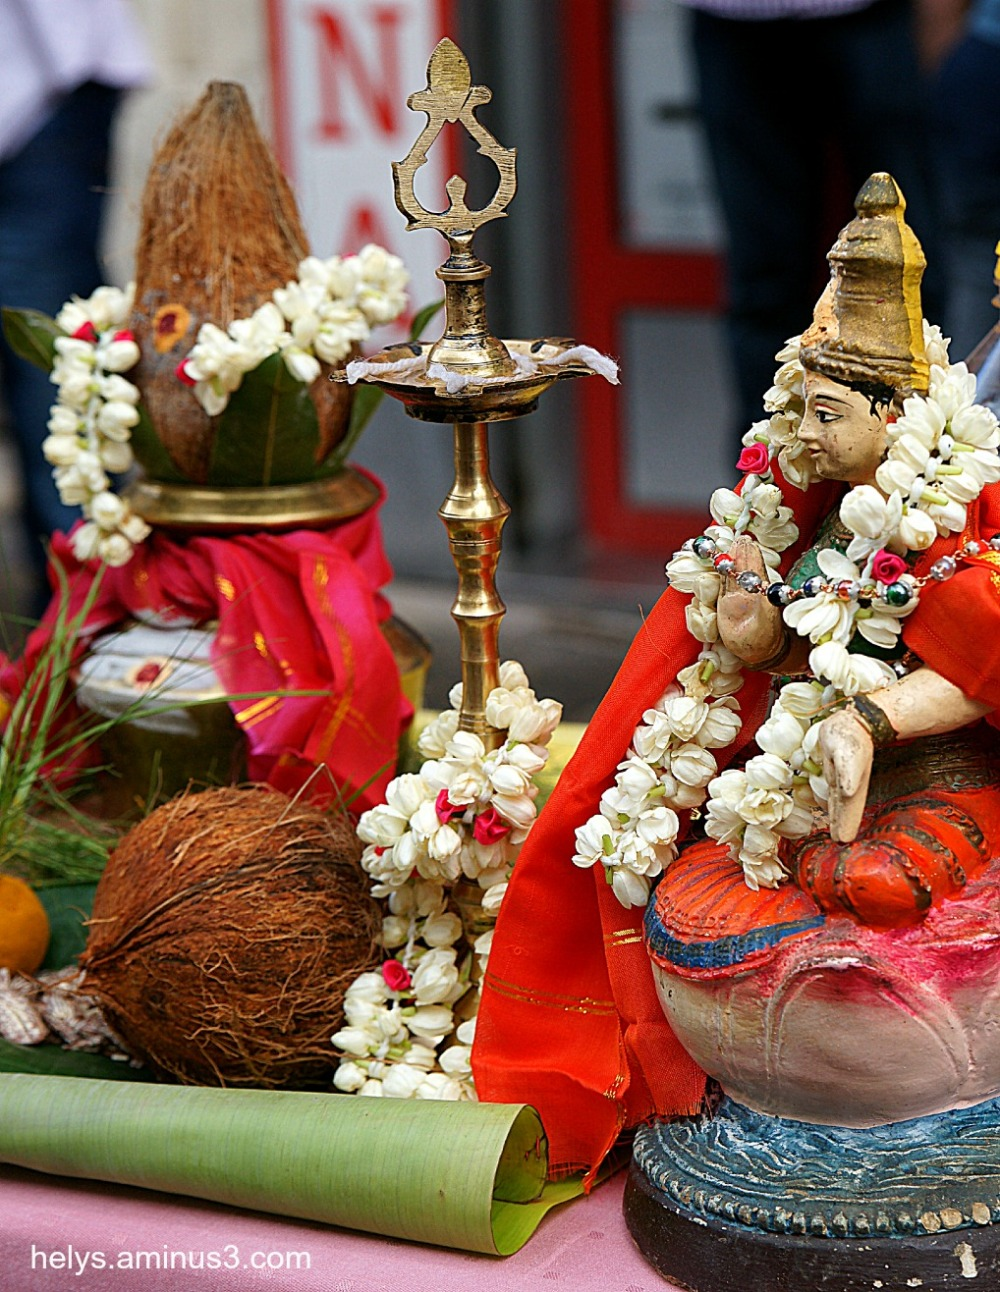 Ganesh party, Paris 2014: Traditions1